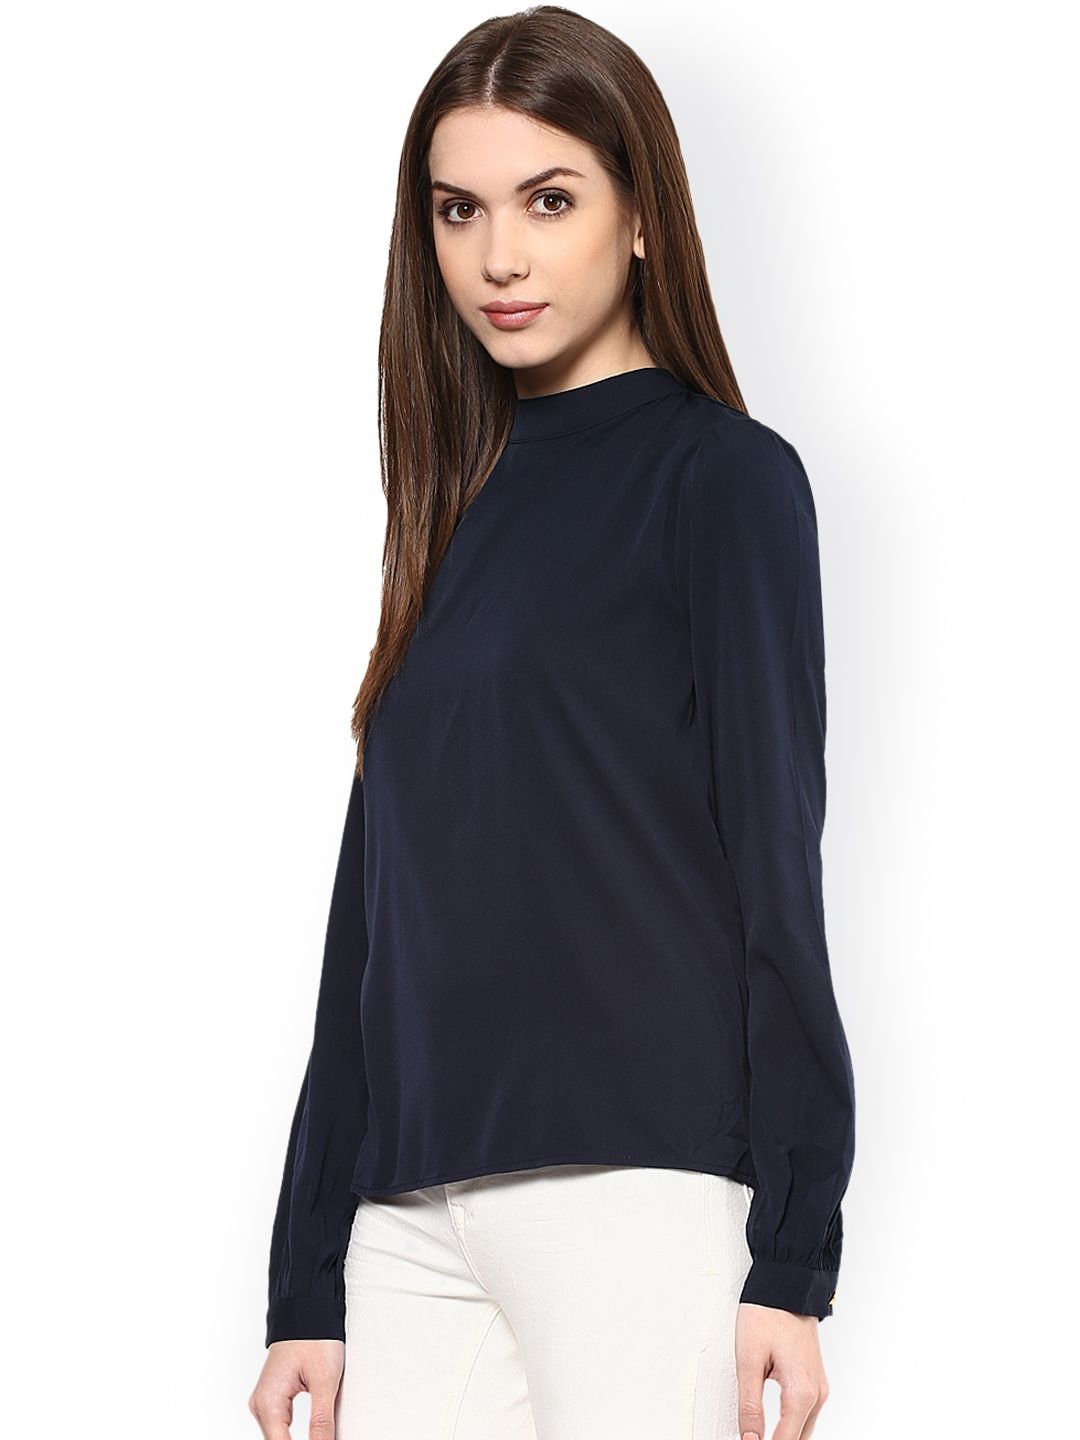 835d8162e67 Buy Harpa Navy Styled Back Top - Tops for Women 1744632 | Myntra